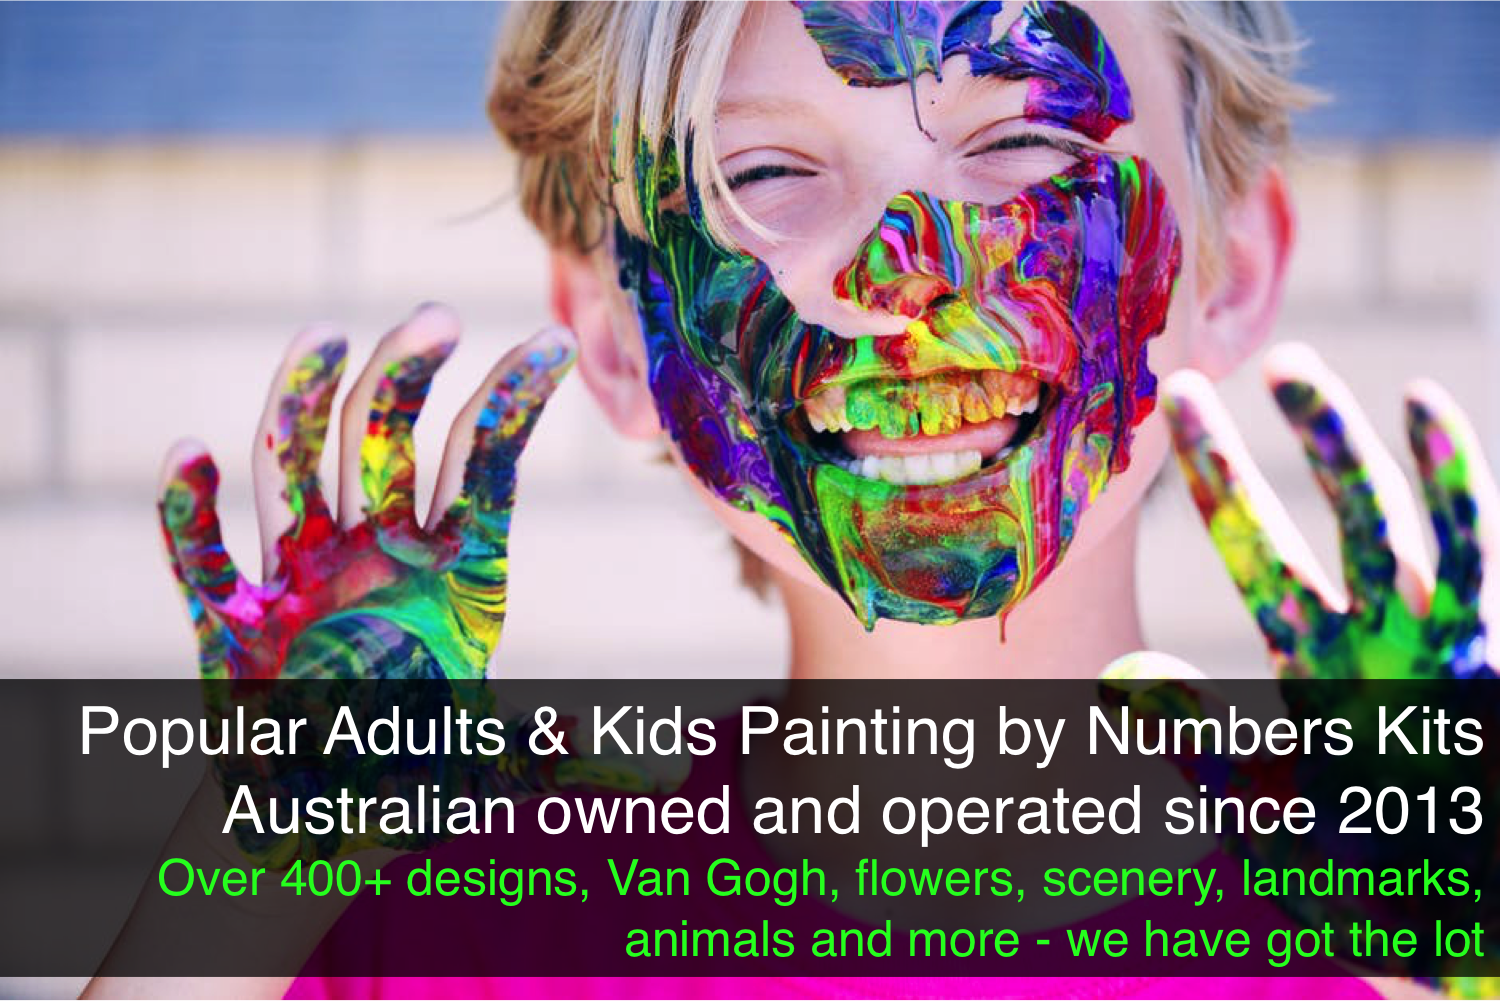 Australia Top Paint by Numbers Kits Provider